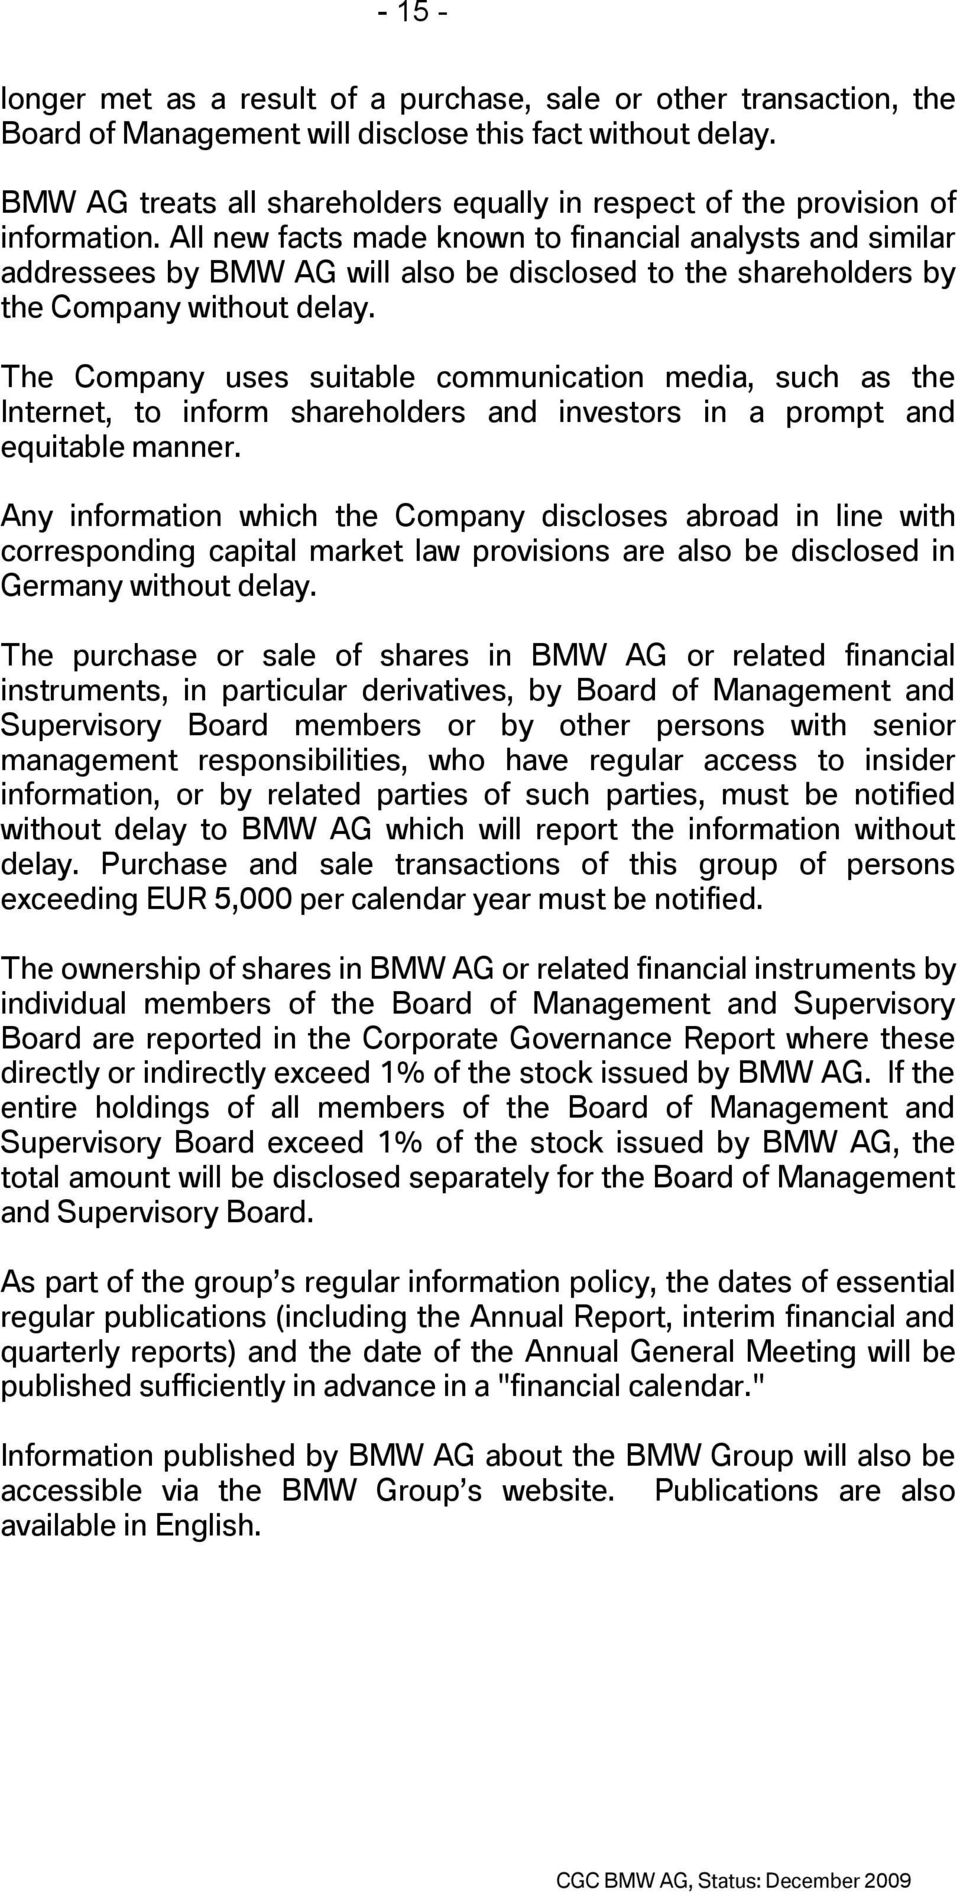 All new facts made known to financial analysts and similar addressees by BMW AG will also be disclosed to the shareholders by the Company without delay.